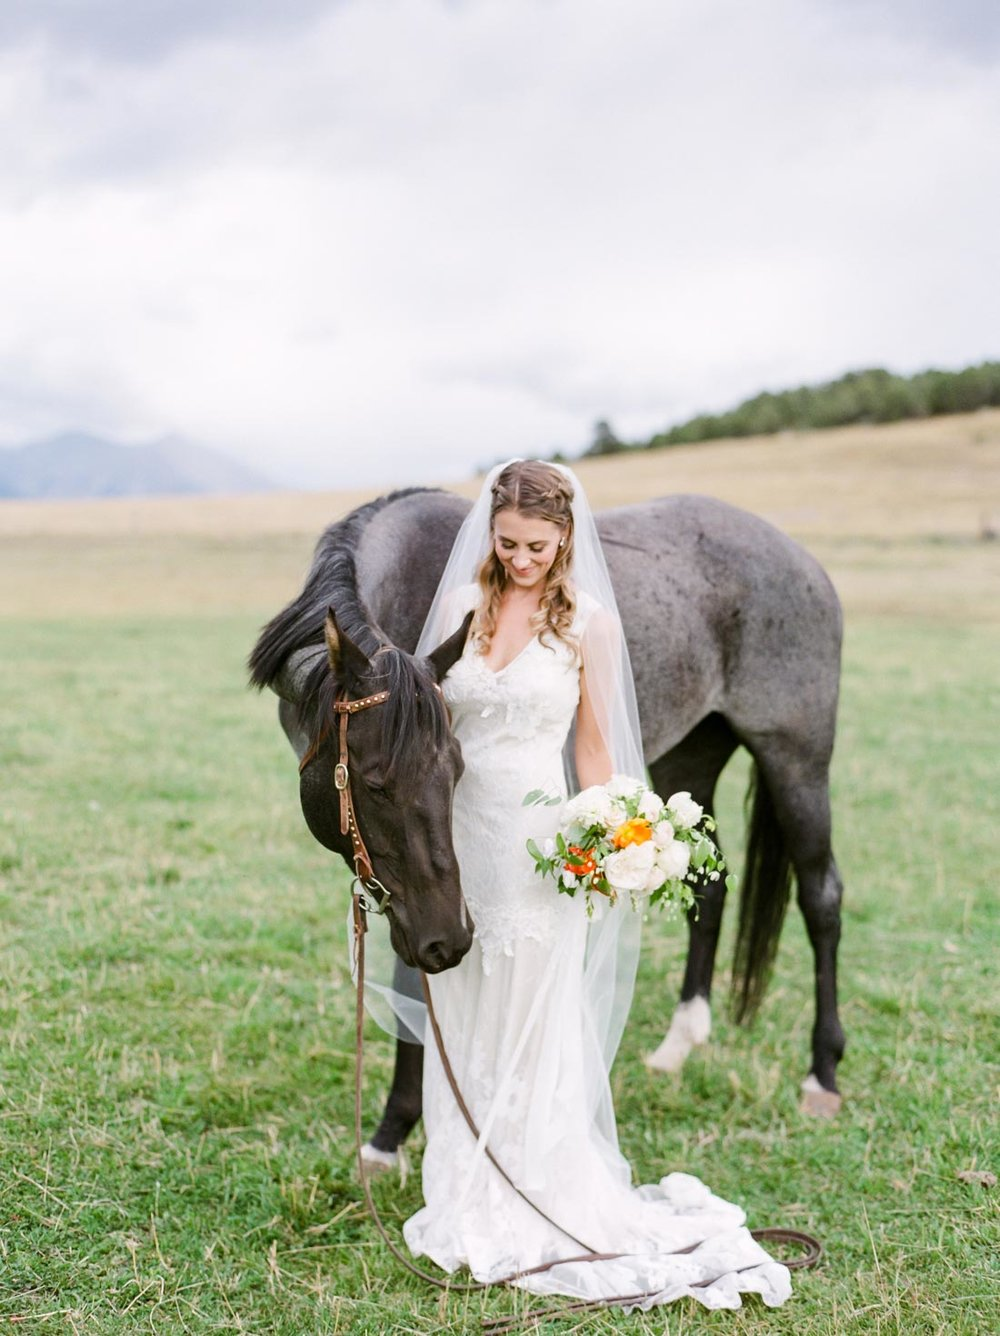 Megan_Zack_Cedar_Ridge_Ranch_Wedding_by_Connie_Whitlock_web_363.jpg